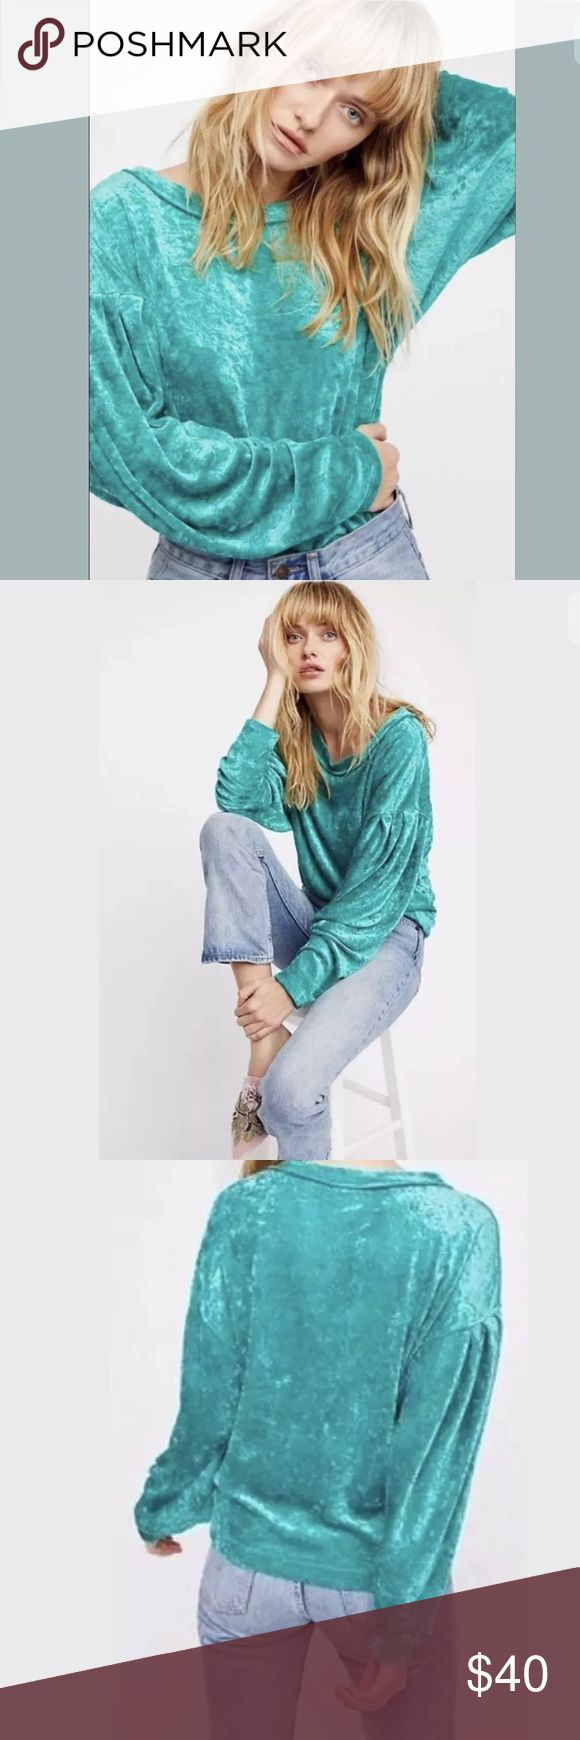 Free People We the Free Milan Crushed Velvet Oversized, could fit up to a size large depending on how slouchy you wanted to wear it. The purple top is shown to see the pleating detail in the sleeve, the top for sale is sea green.  Comfy pullover featured in a luxe velvet with dolman style sleeves.  Pleat detailing on the sleeves Rounded neckline We The Free  Perfectly distressed, all-American styles. We The Free is an exclusive, in-house label.  Measurements for size small  Bust: 37 in…